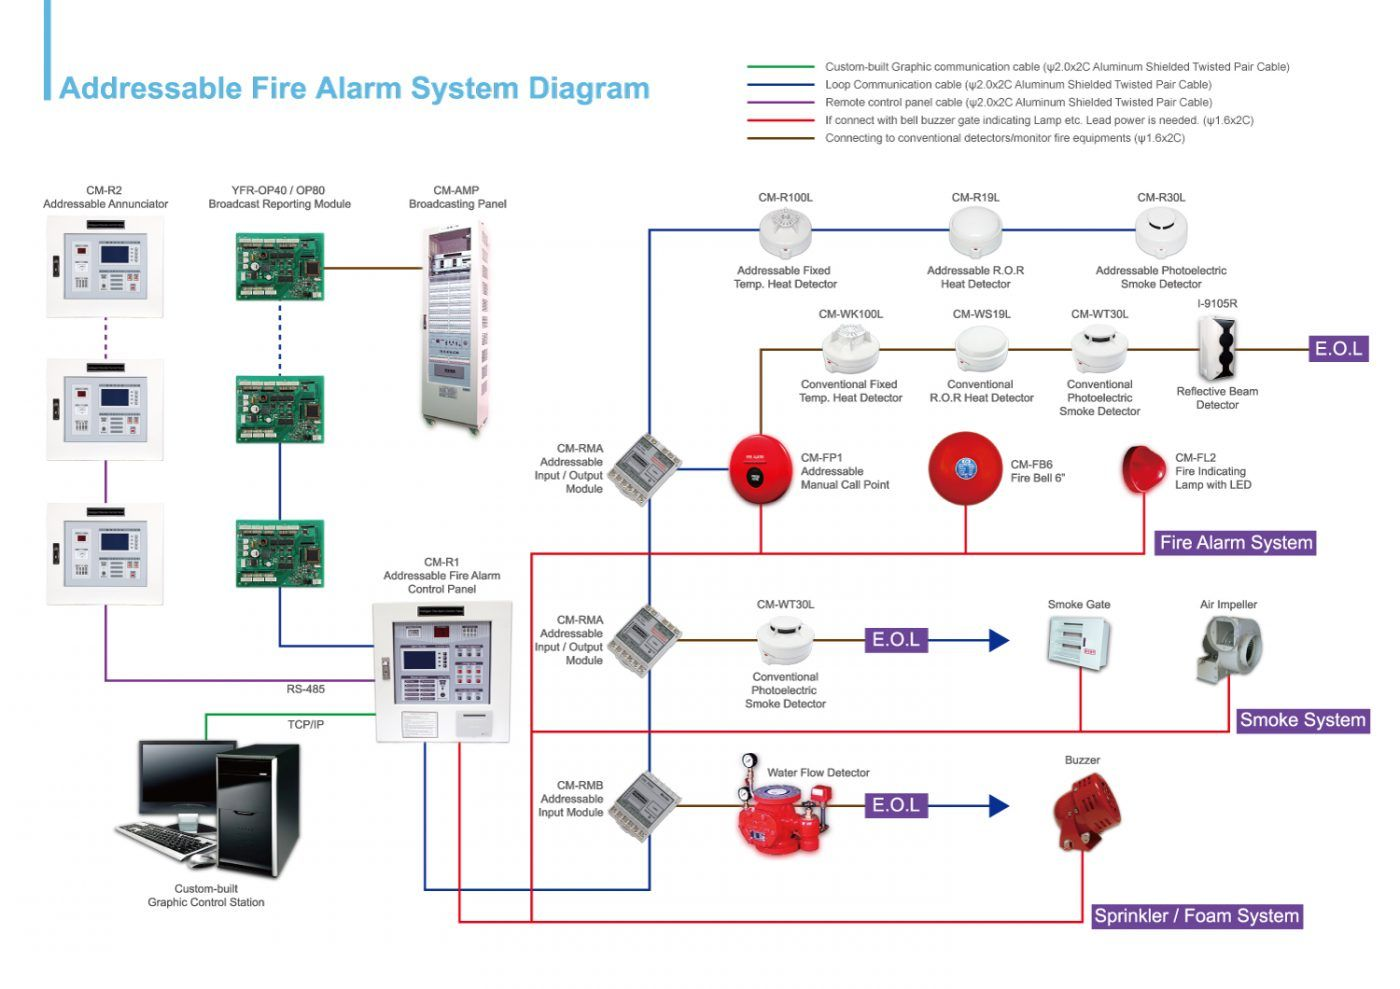 Fire Alarm Wiring Diagram Addressable Gallery In 2020 Fire Alarm System Fire Alarm Alarm System